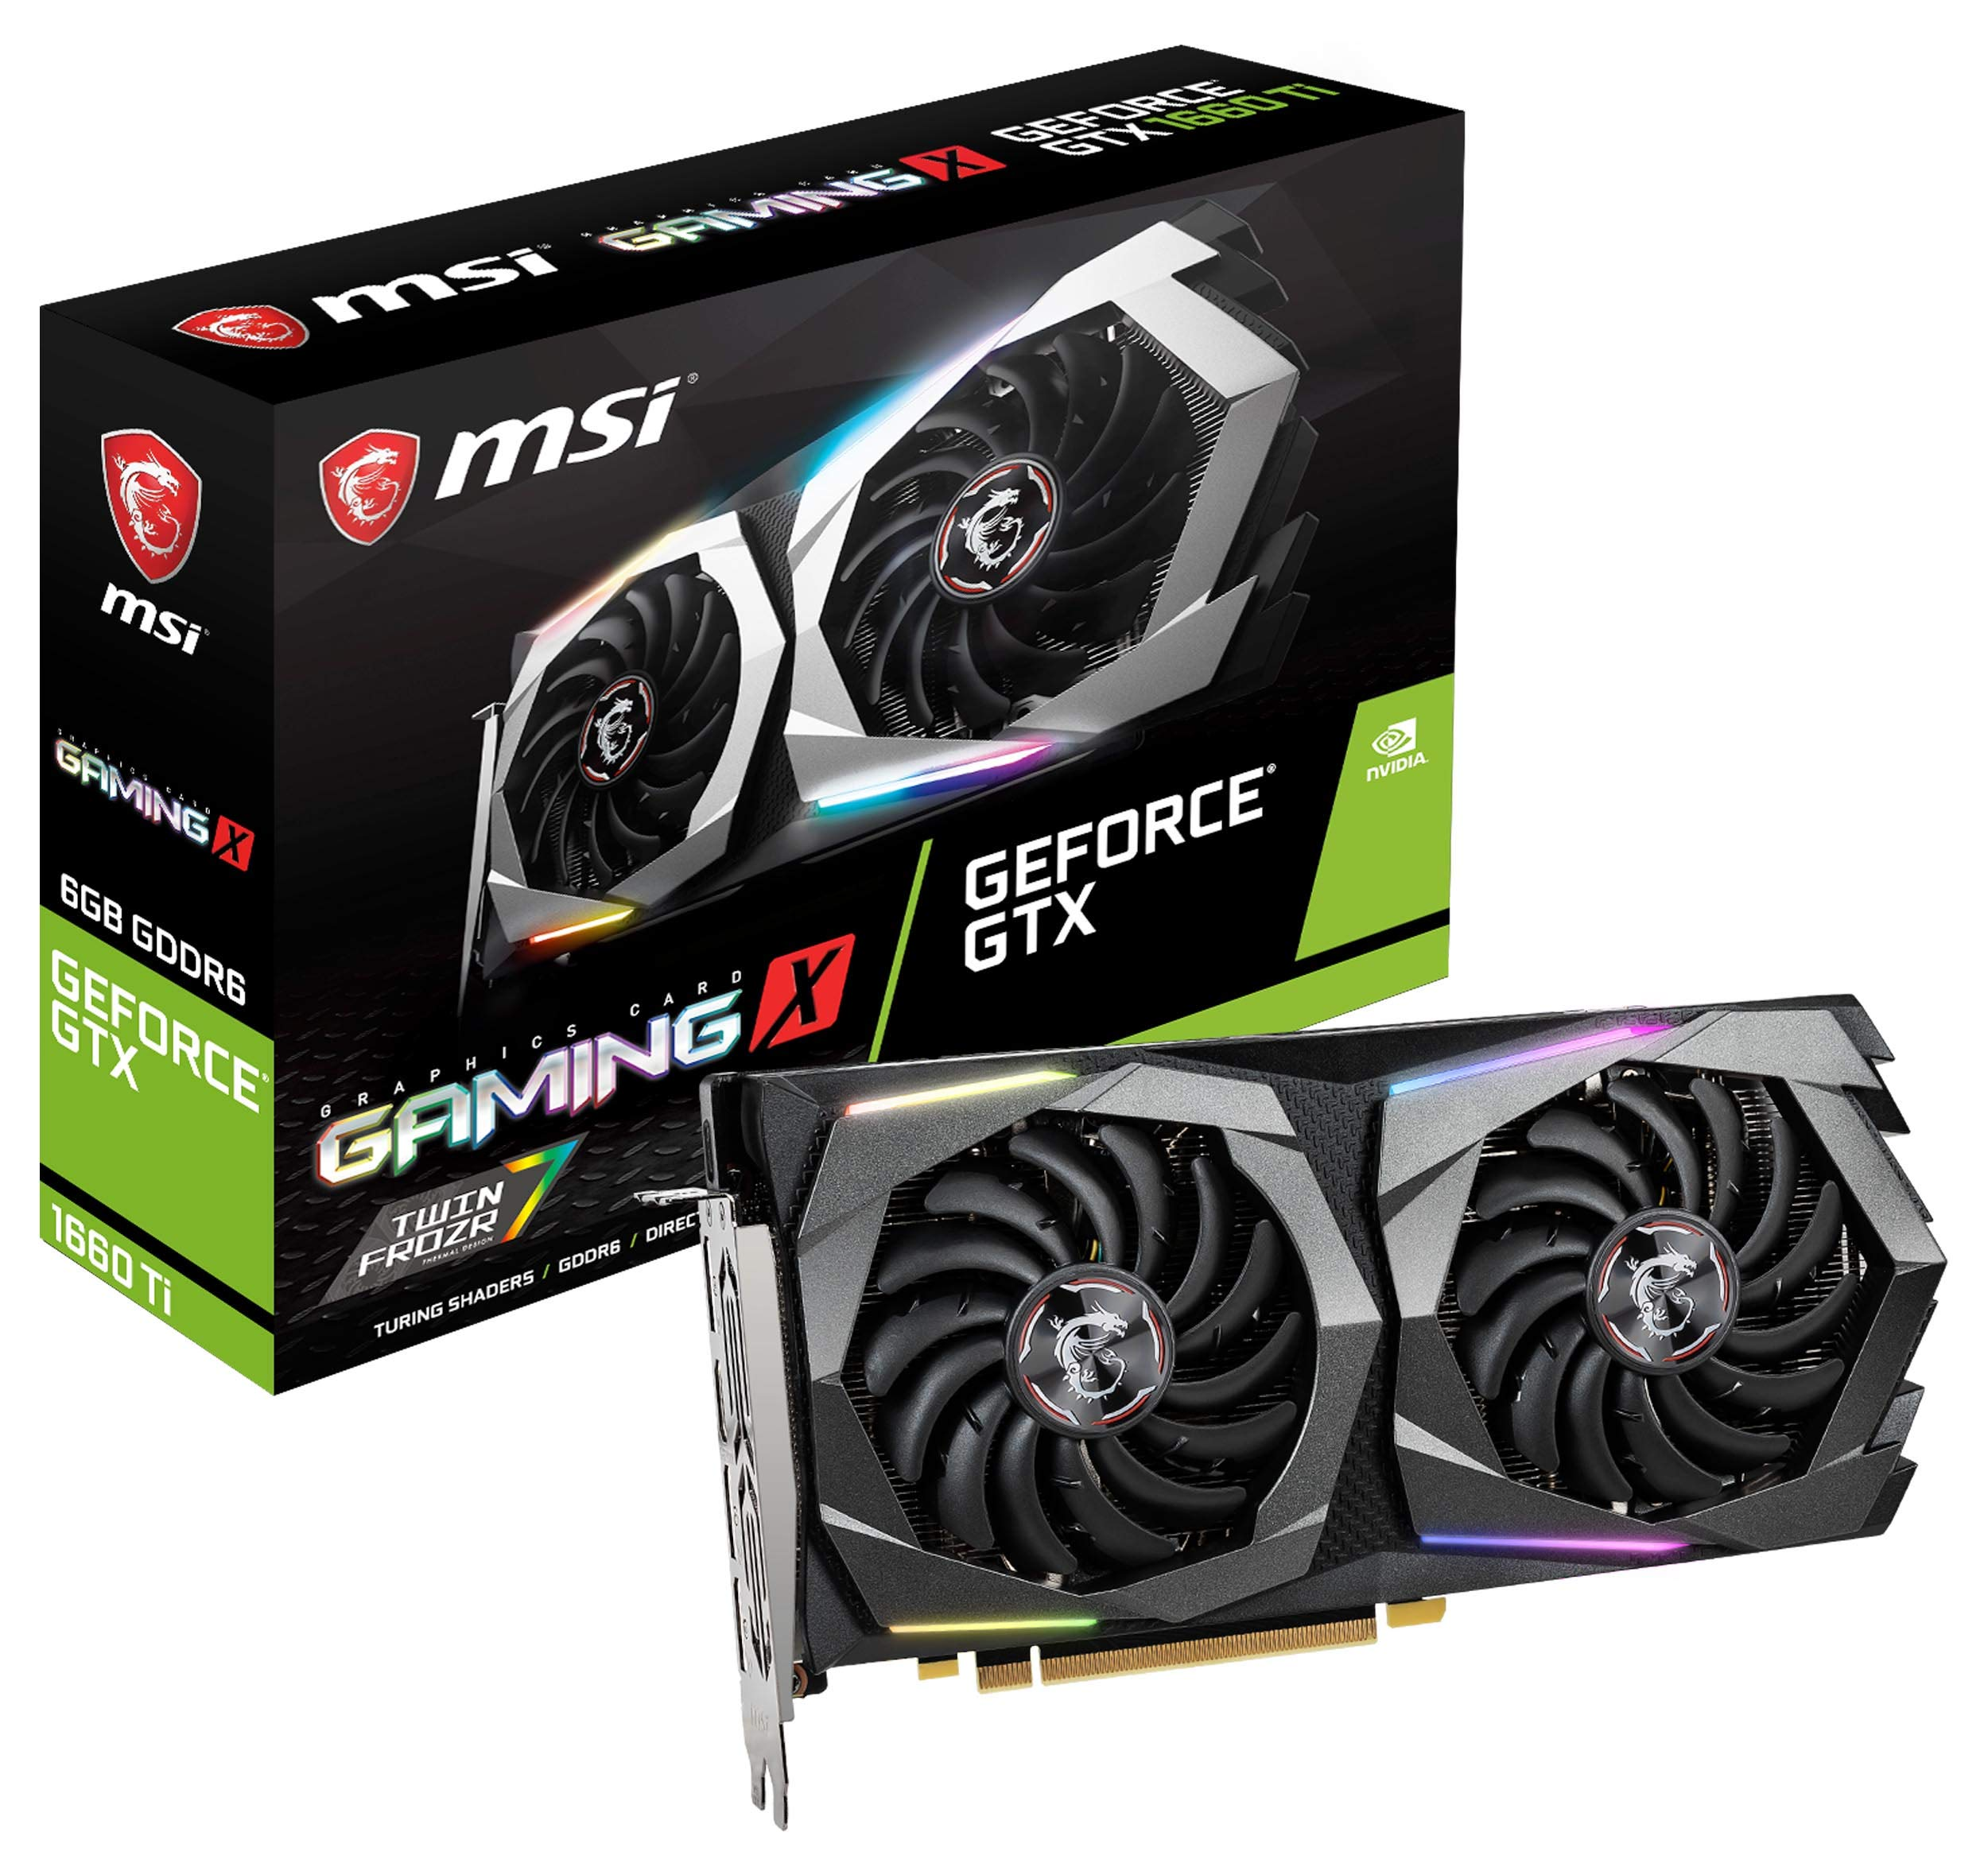 MSI Gaming GeForce GTX 1660 Ti 192-bit HDMI/DP 6GB GDRR6 HDCP Support DirectX 12 Dual Fan VR Ready OC Graphics Card (GTX 1660 TI Gaming X 6G) by MSI (Image #1)